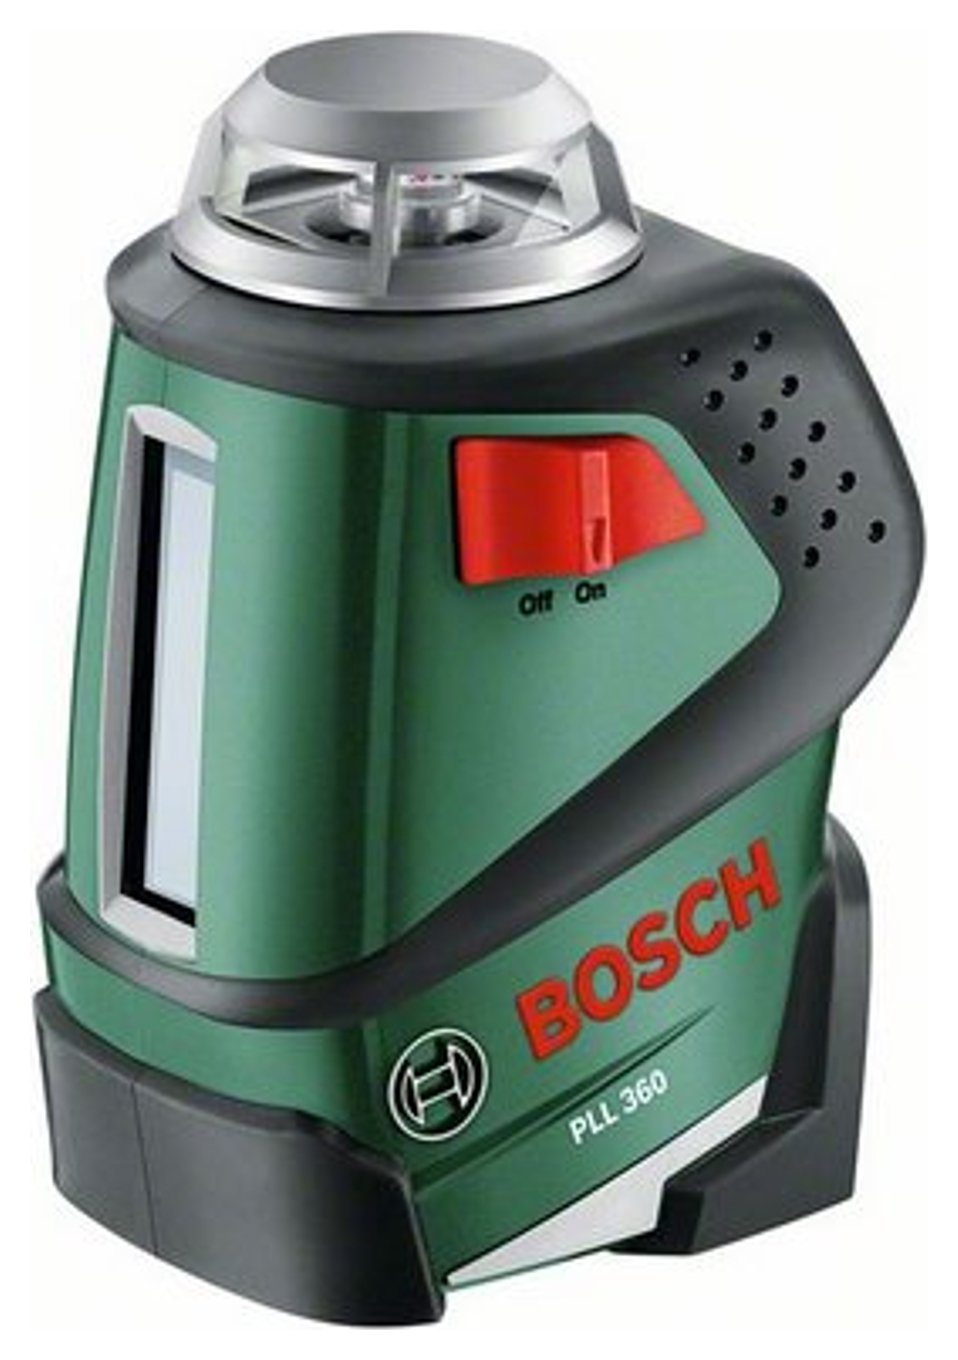 Bosch PLL 360 Set Levelling Laser 360 Degrees + Tripod